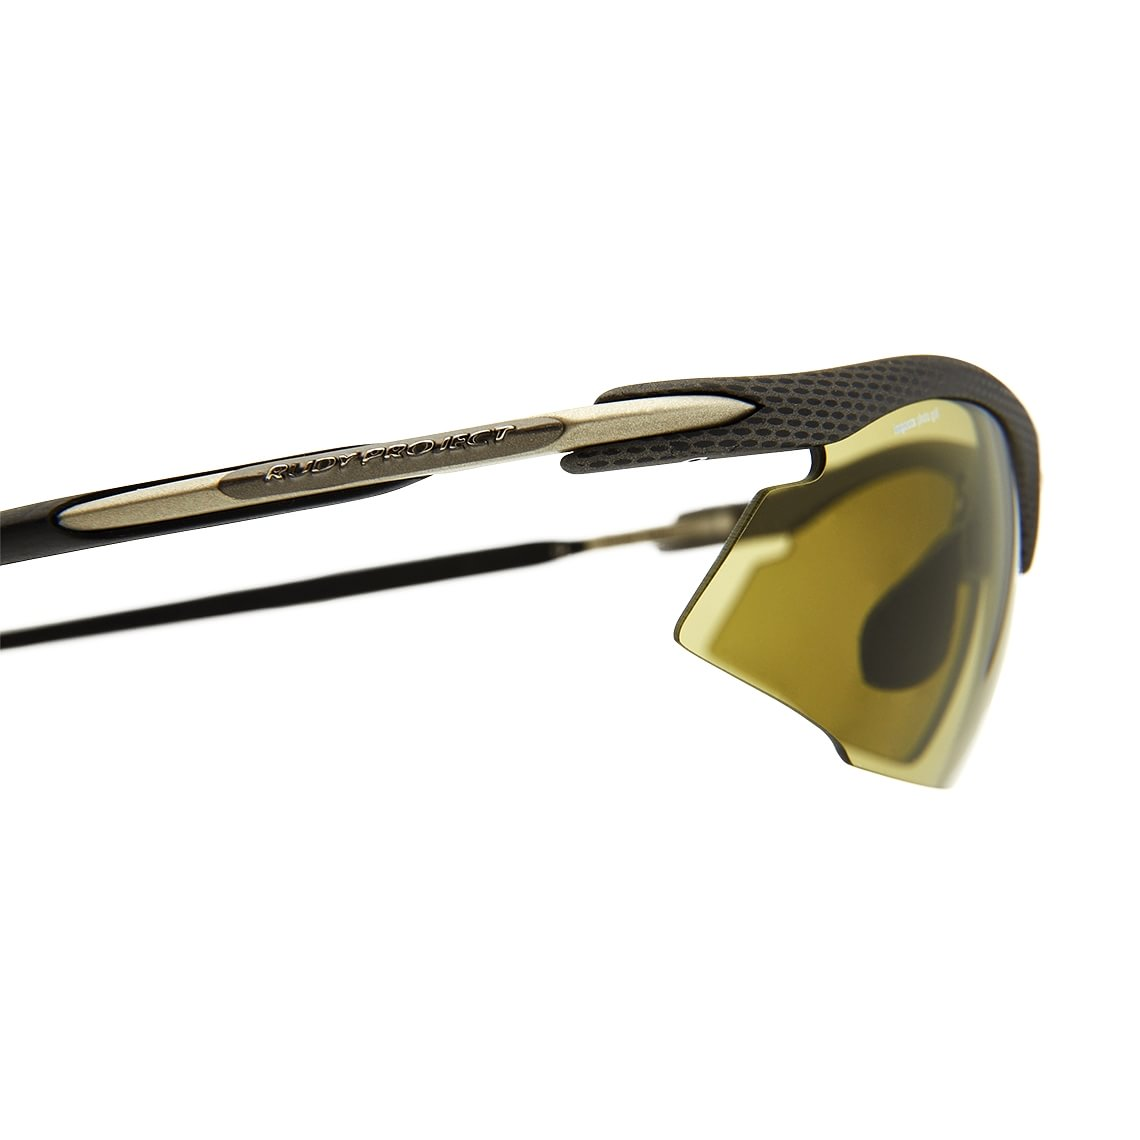 Rudy Project Rydon Impact X Photochromic Golf SN798514G